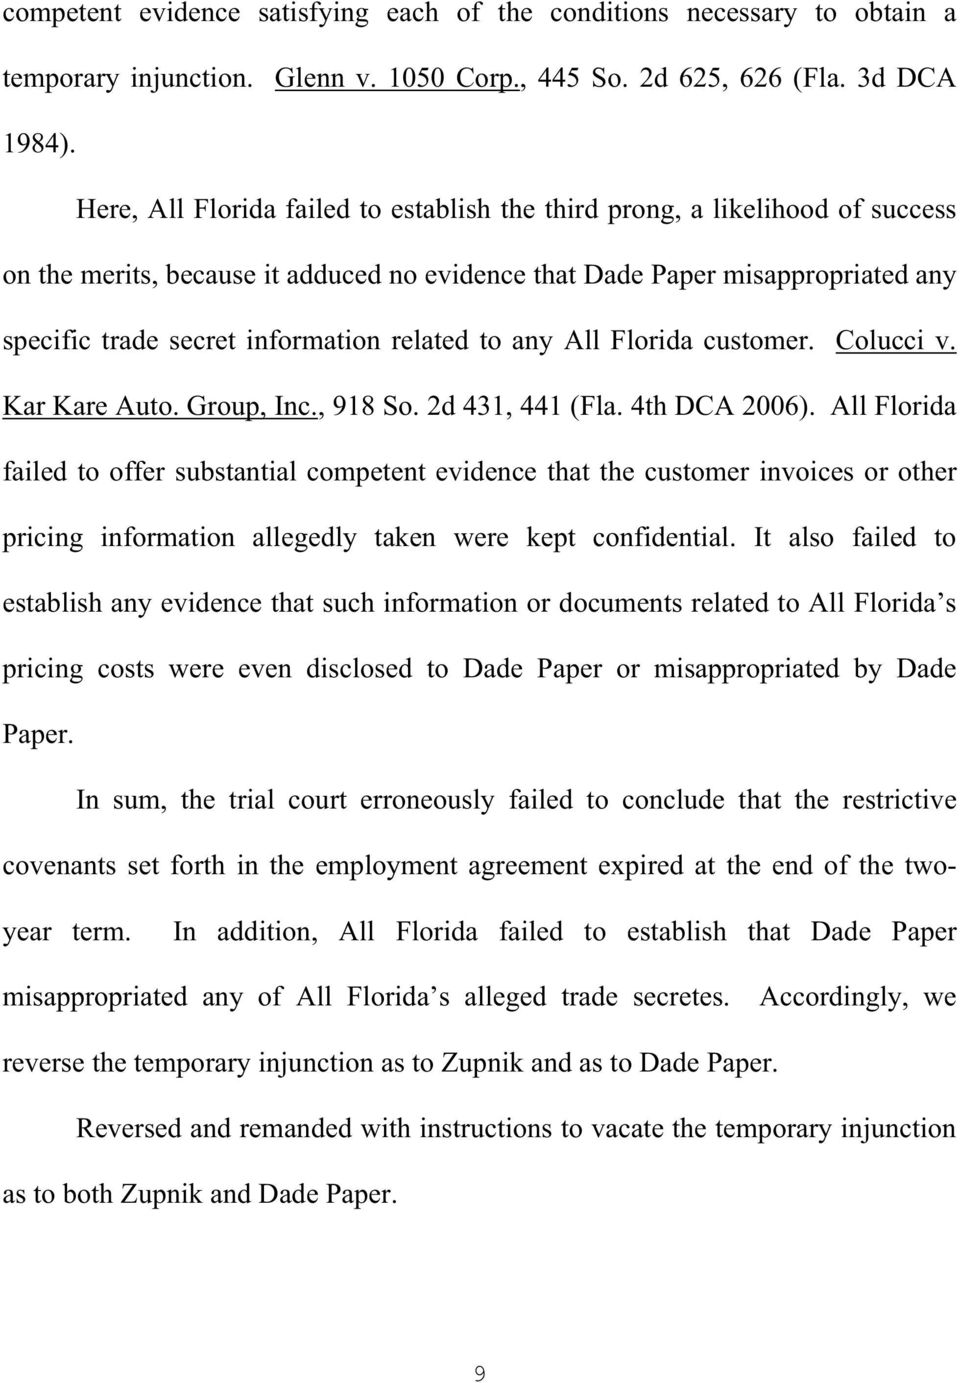 related to any All Florida customer. Colucci v. Kar Kare Auto. Group, Inc., 918 So. 2d 431, 441 (Fla. 4th DCA 2006).